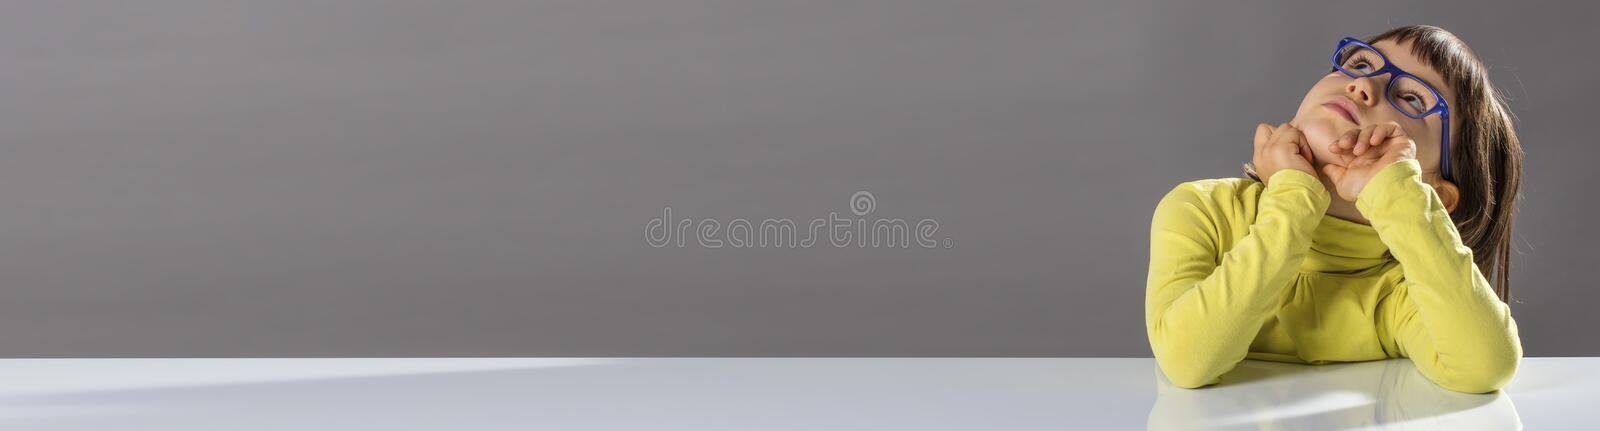 Banner of smart childhood and beautiful open-mindness, copy space royalty free stock photo